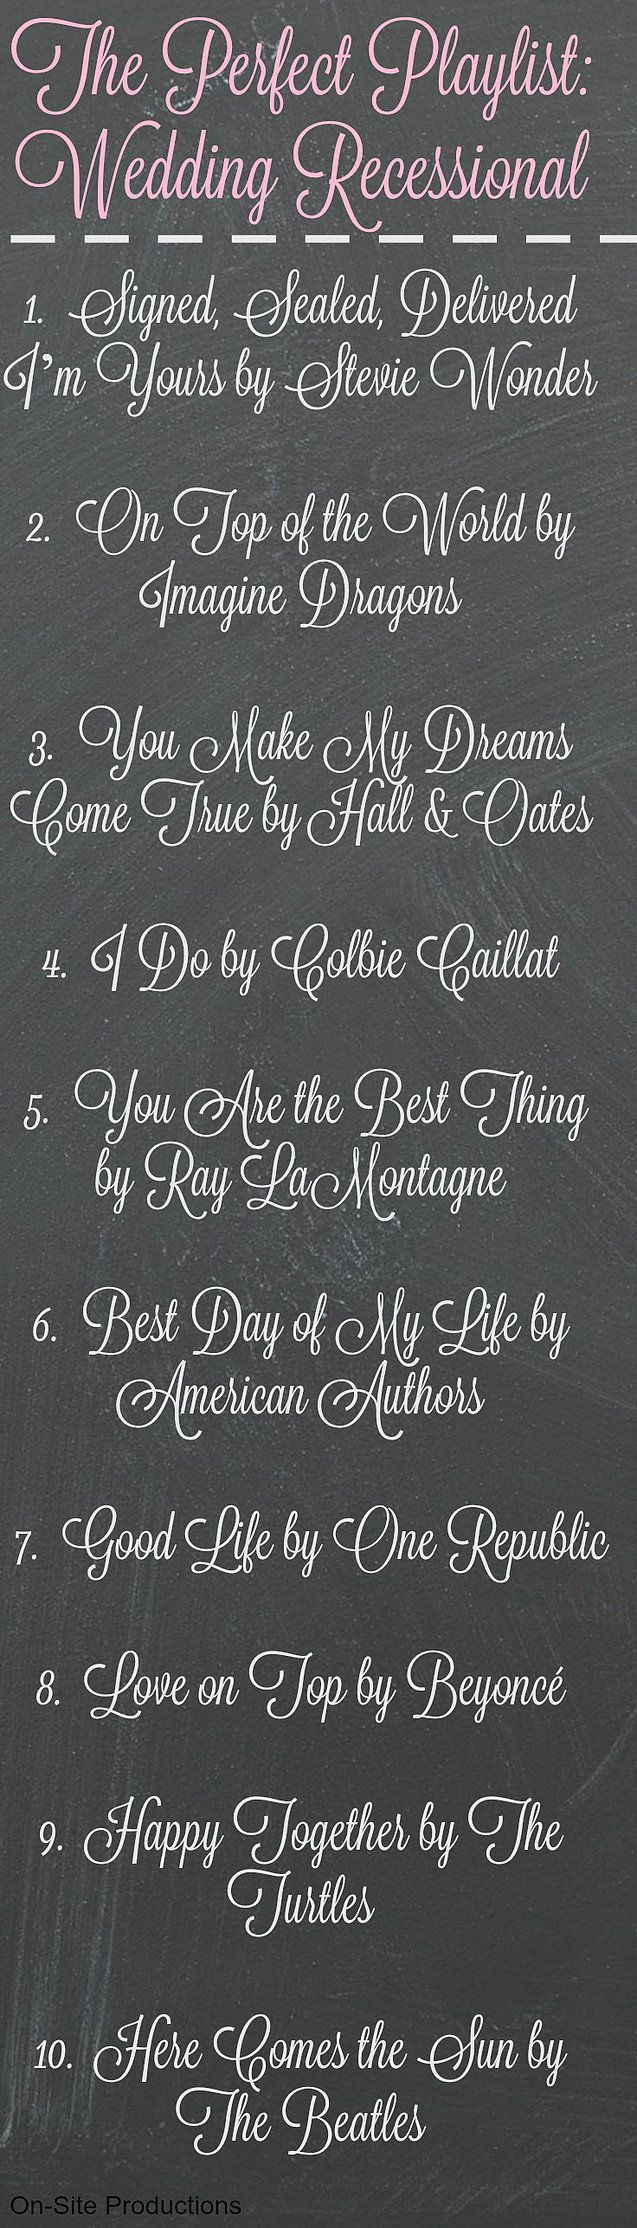 10 Songs for your Wedding Recessional.  I love all of these fun, upbeat songs to play for my recessional and celebrate that we just got married!!!